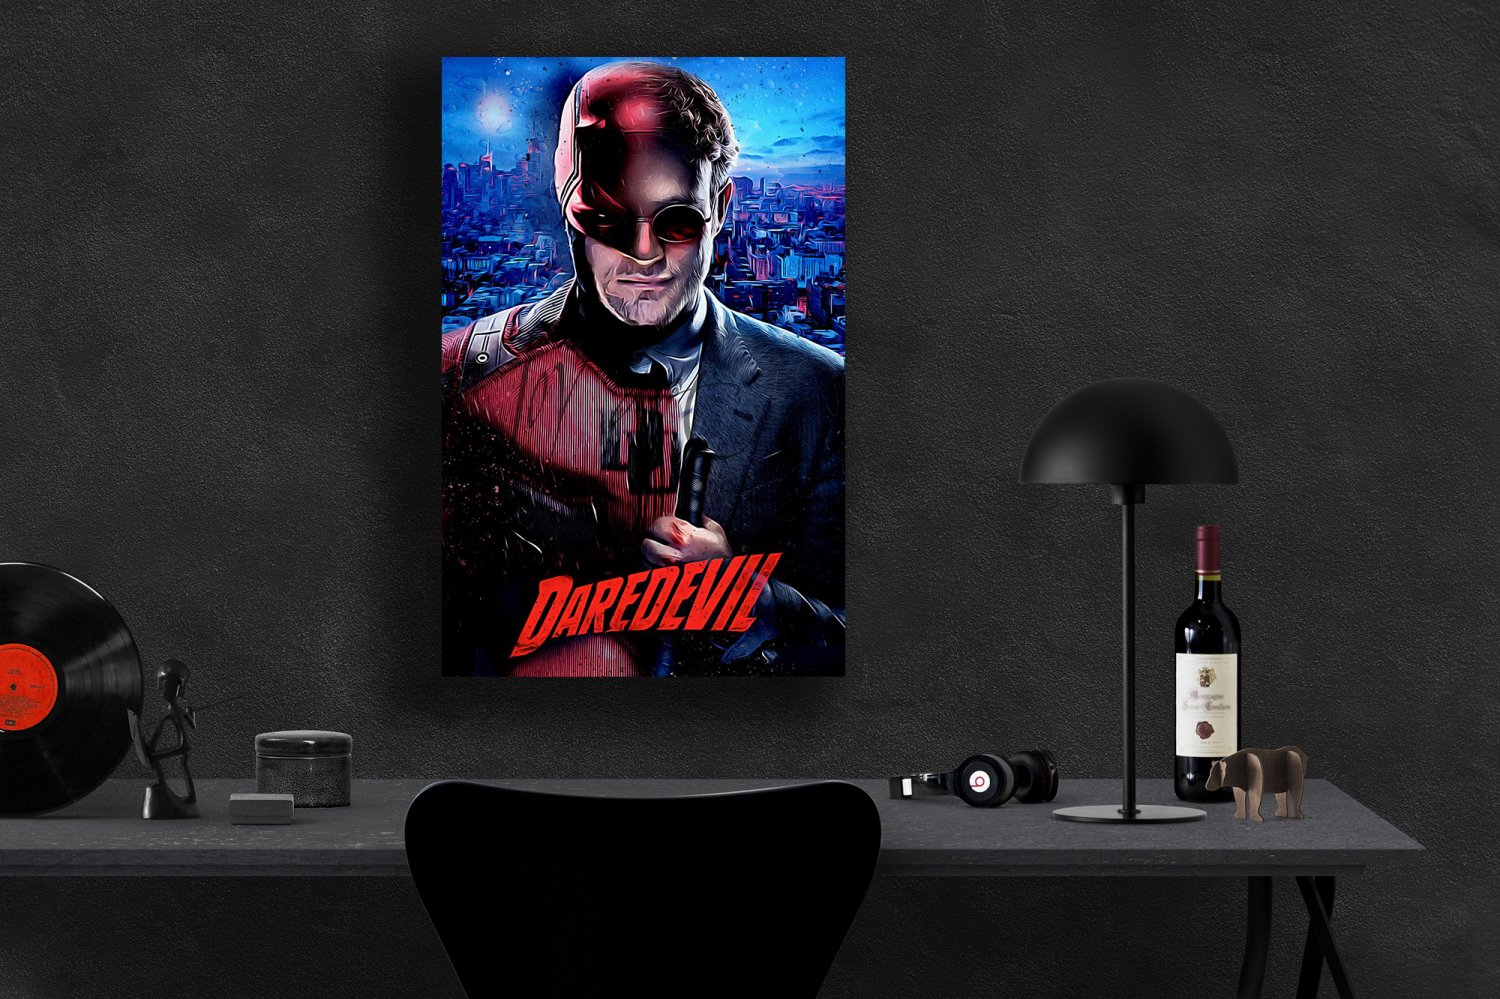 Daredevil, Charlie Cox, Matt Murdock  18x28 inches Canvas Print